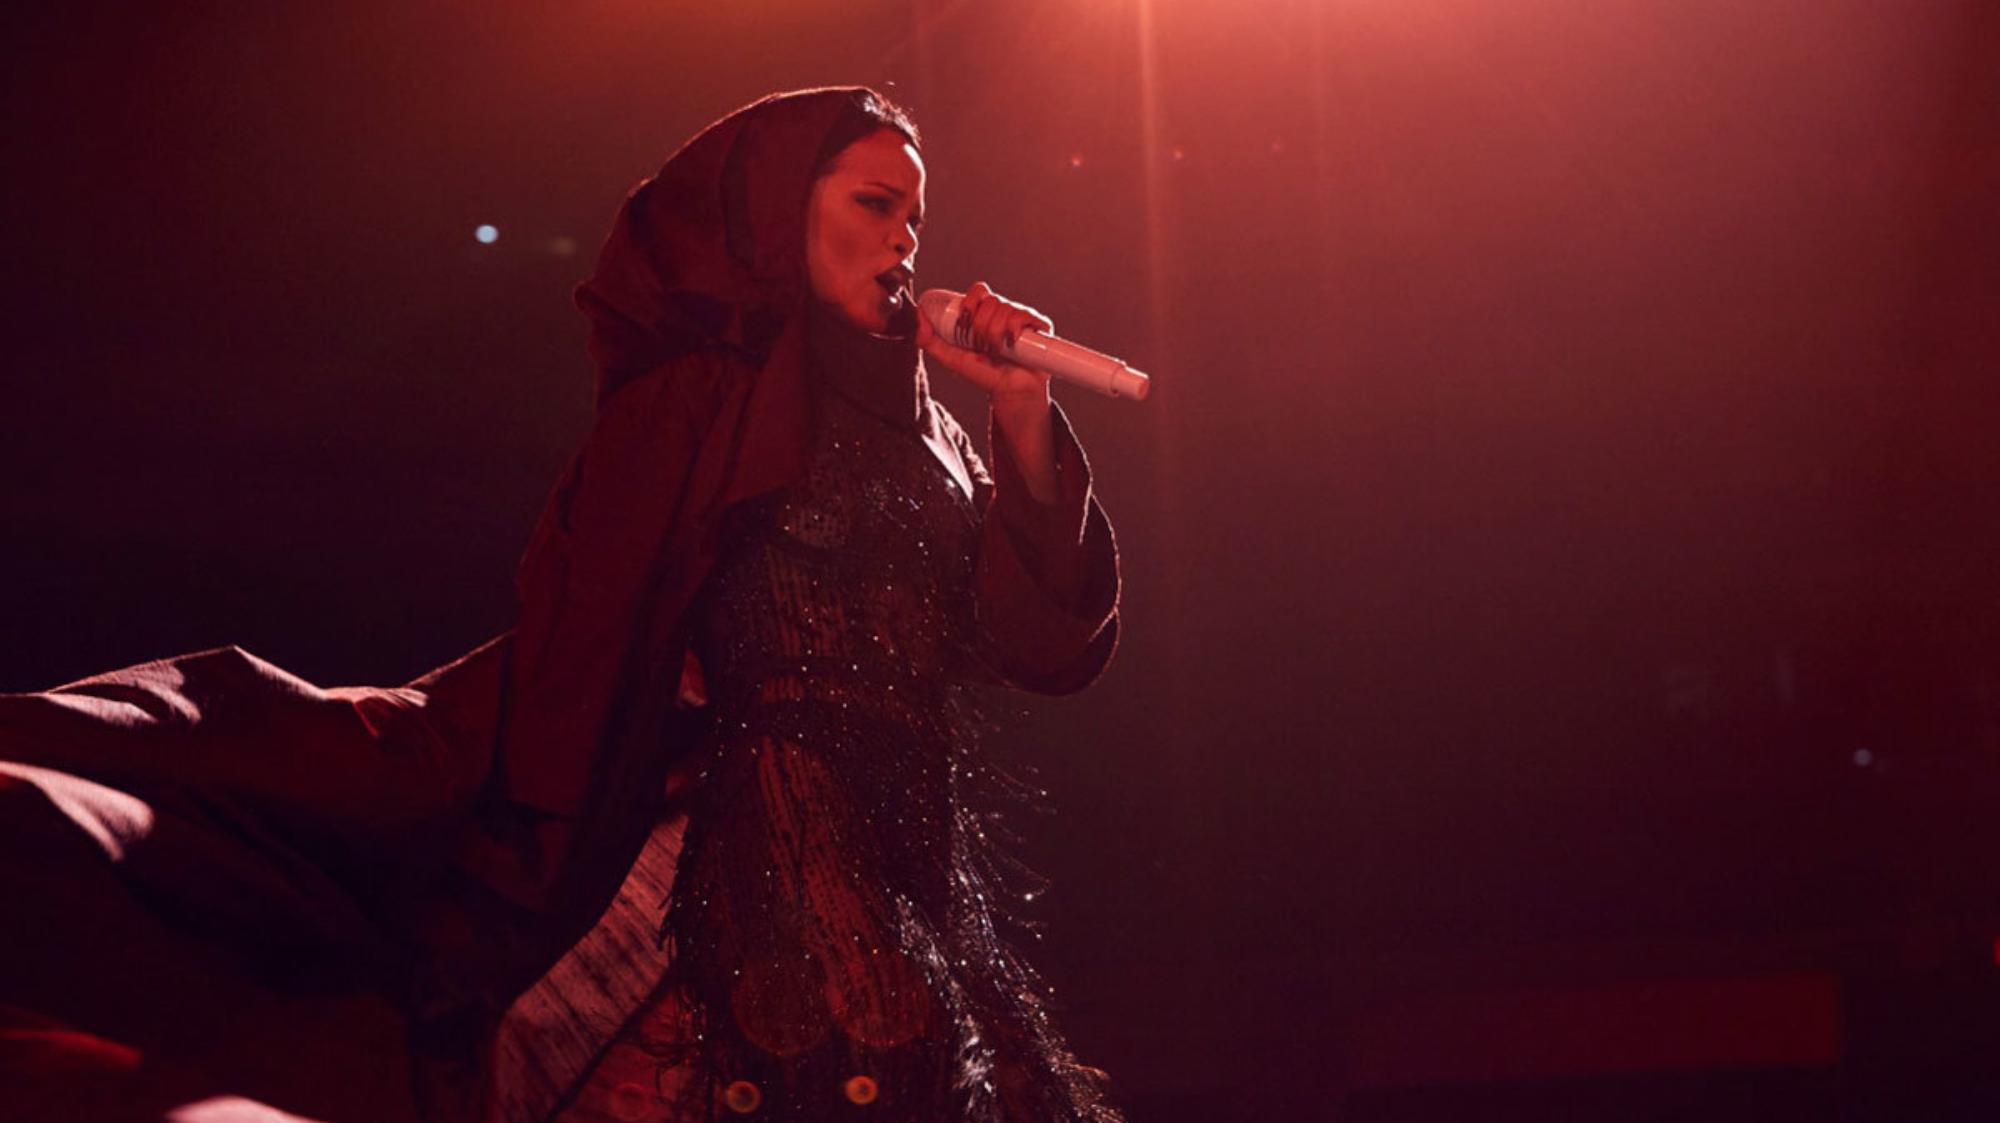 10-things-we-learned-at-rihannas-anti-world-tour-1462355527